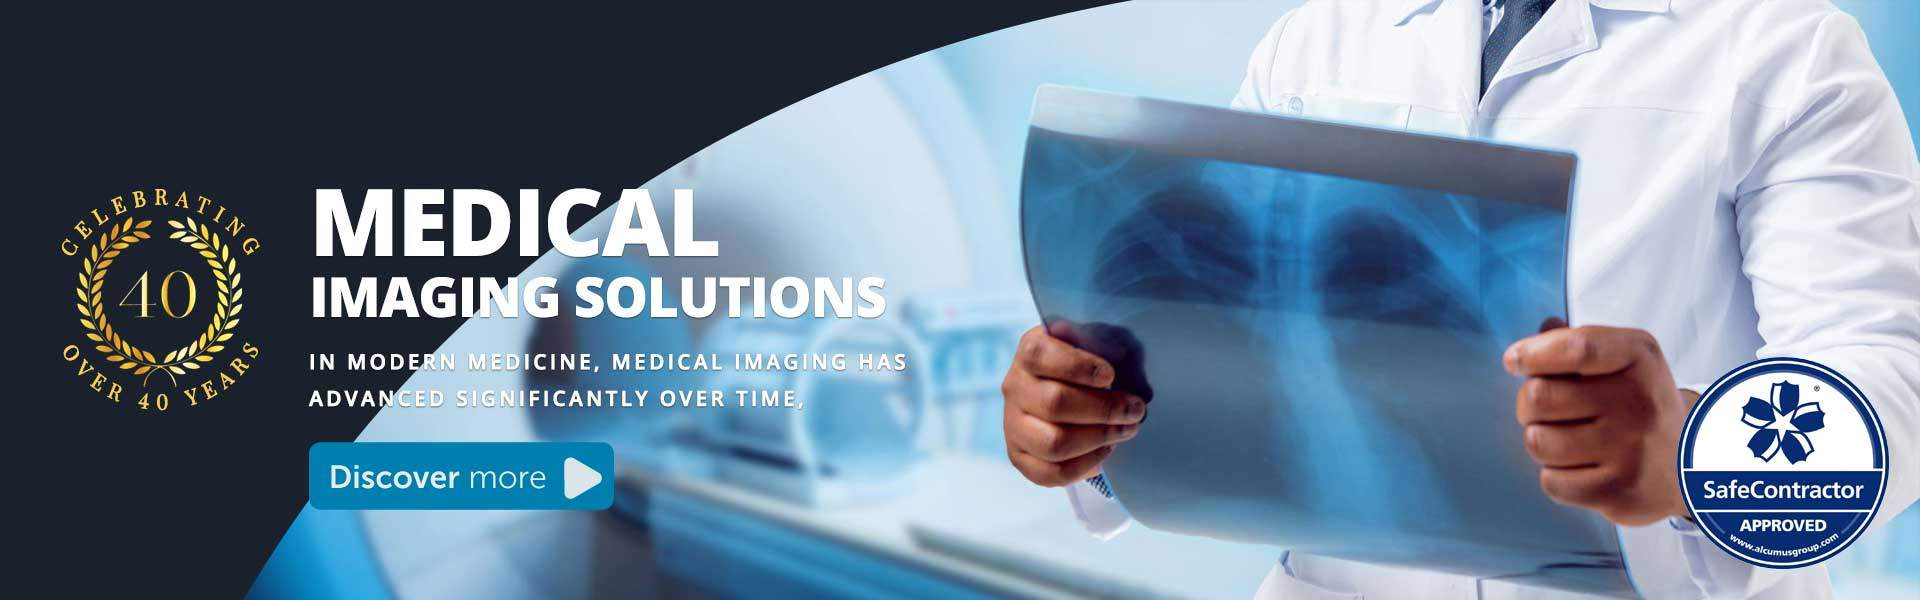 Medical Imaging Solutions